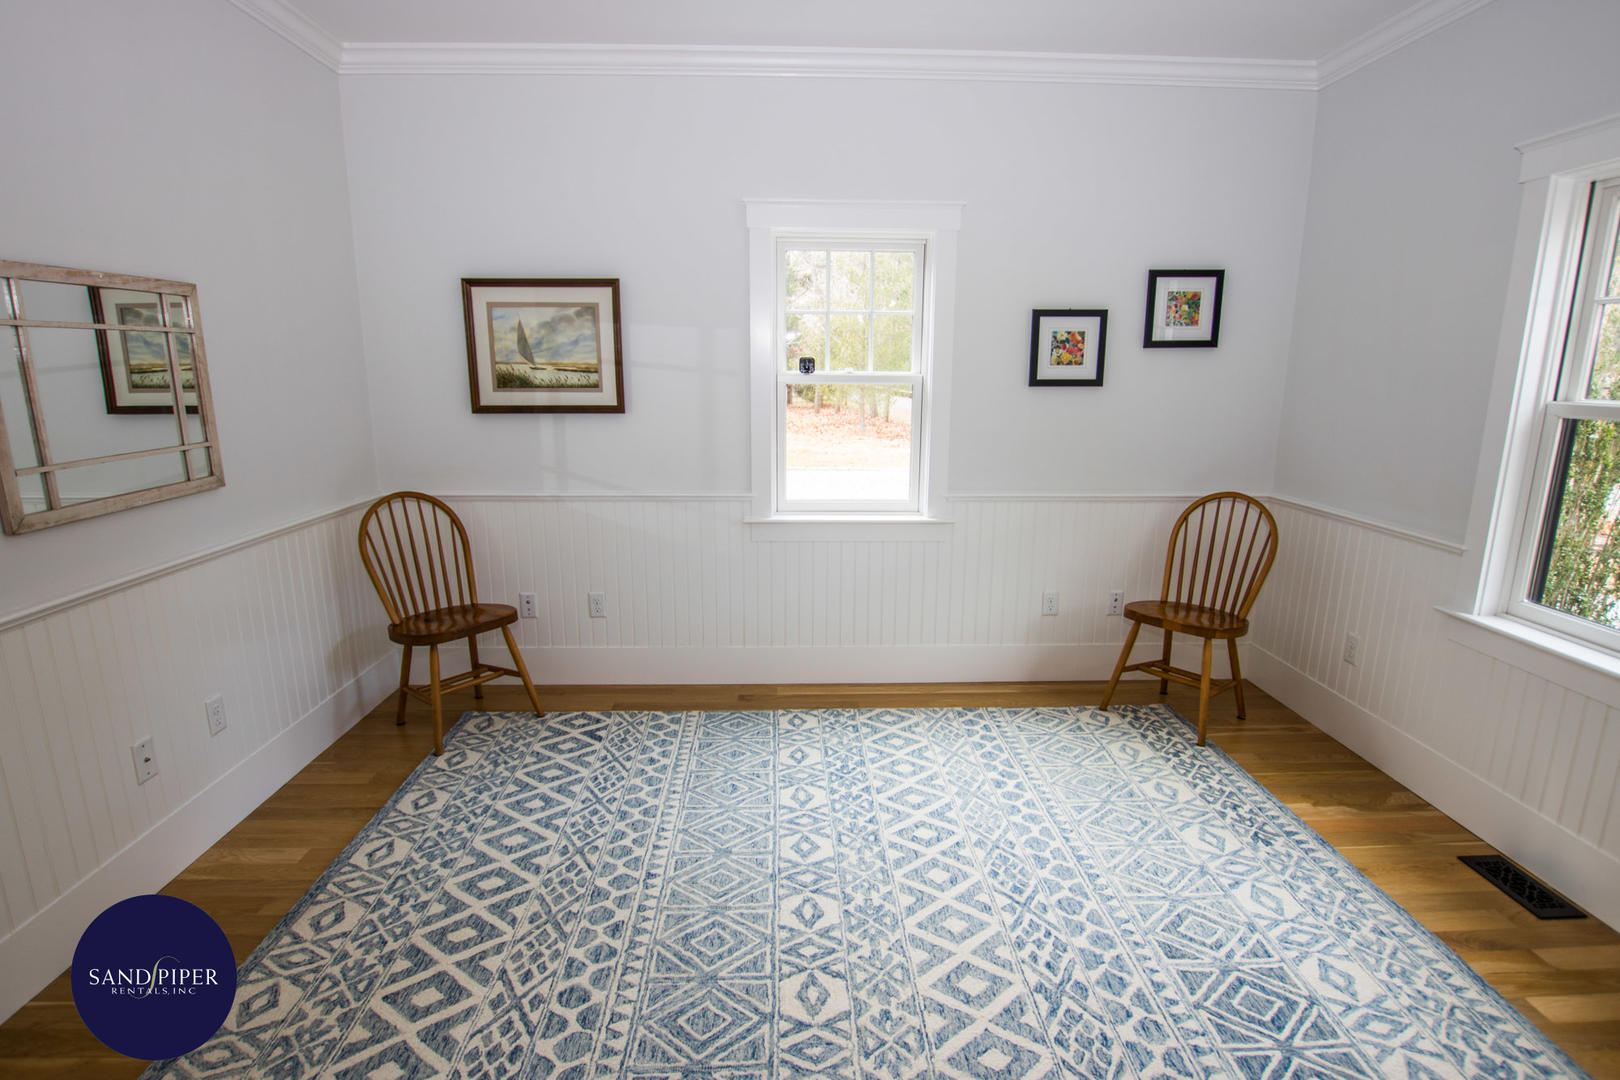 FURNISHINGS TO ARRIVE - Dining Room